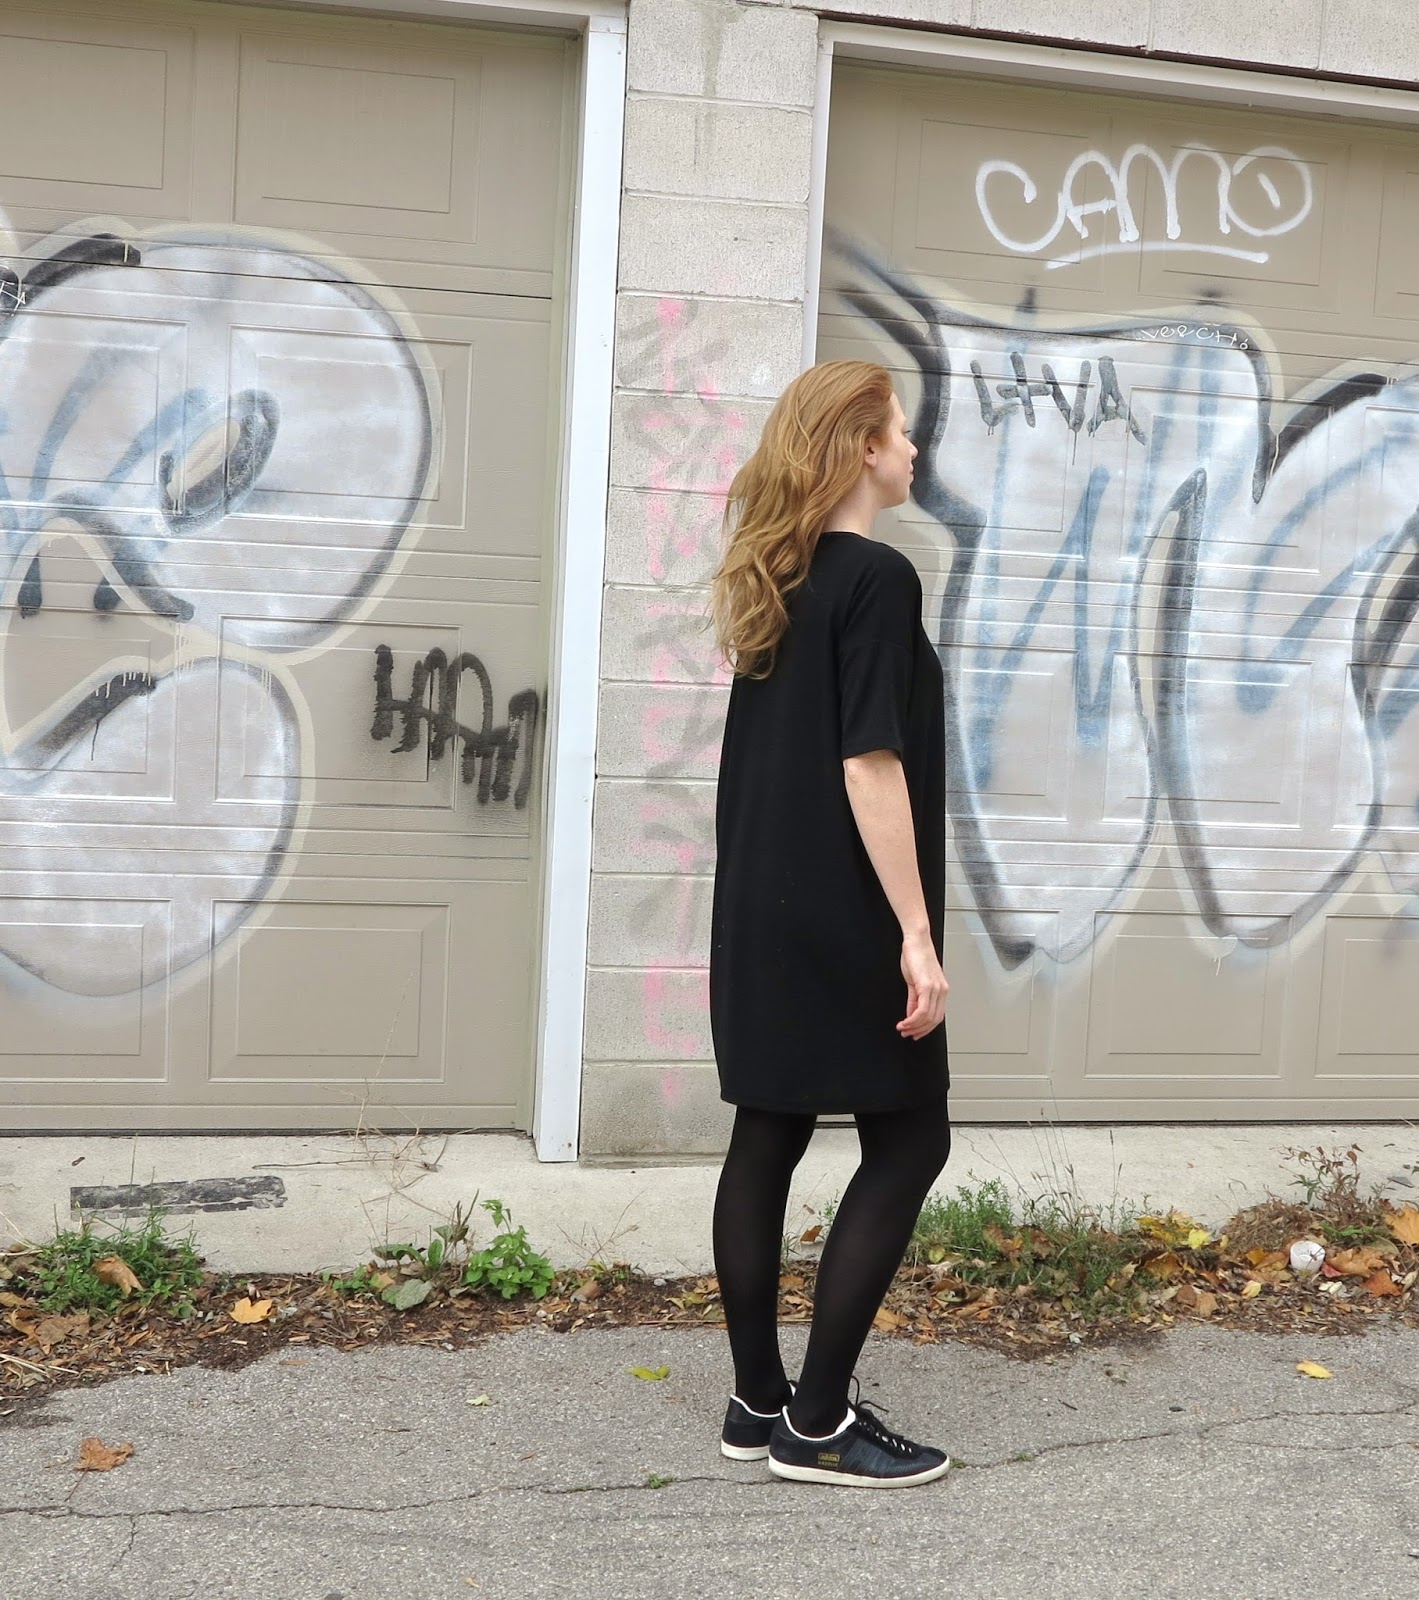 adidas, minimum, fashion, ootd, toronto blog, style